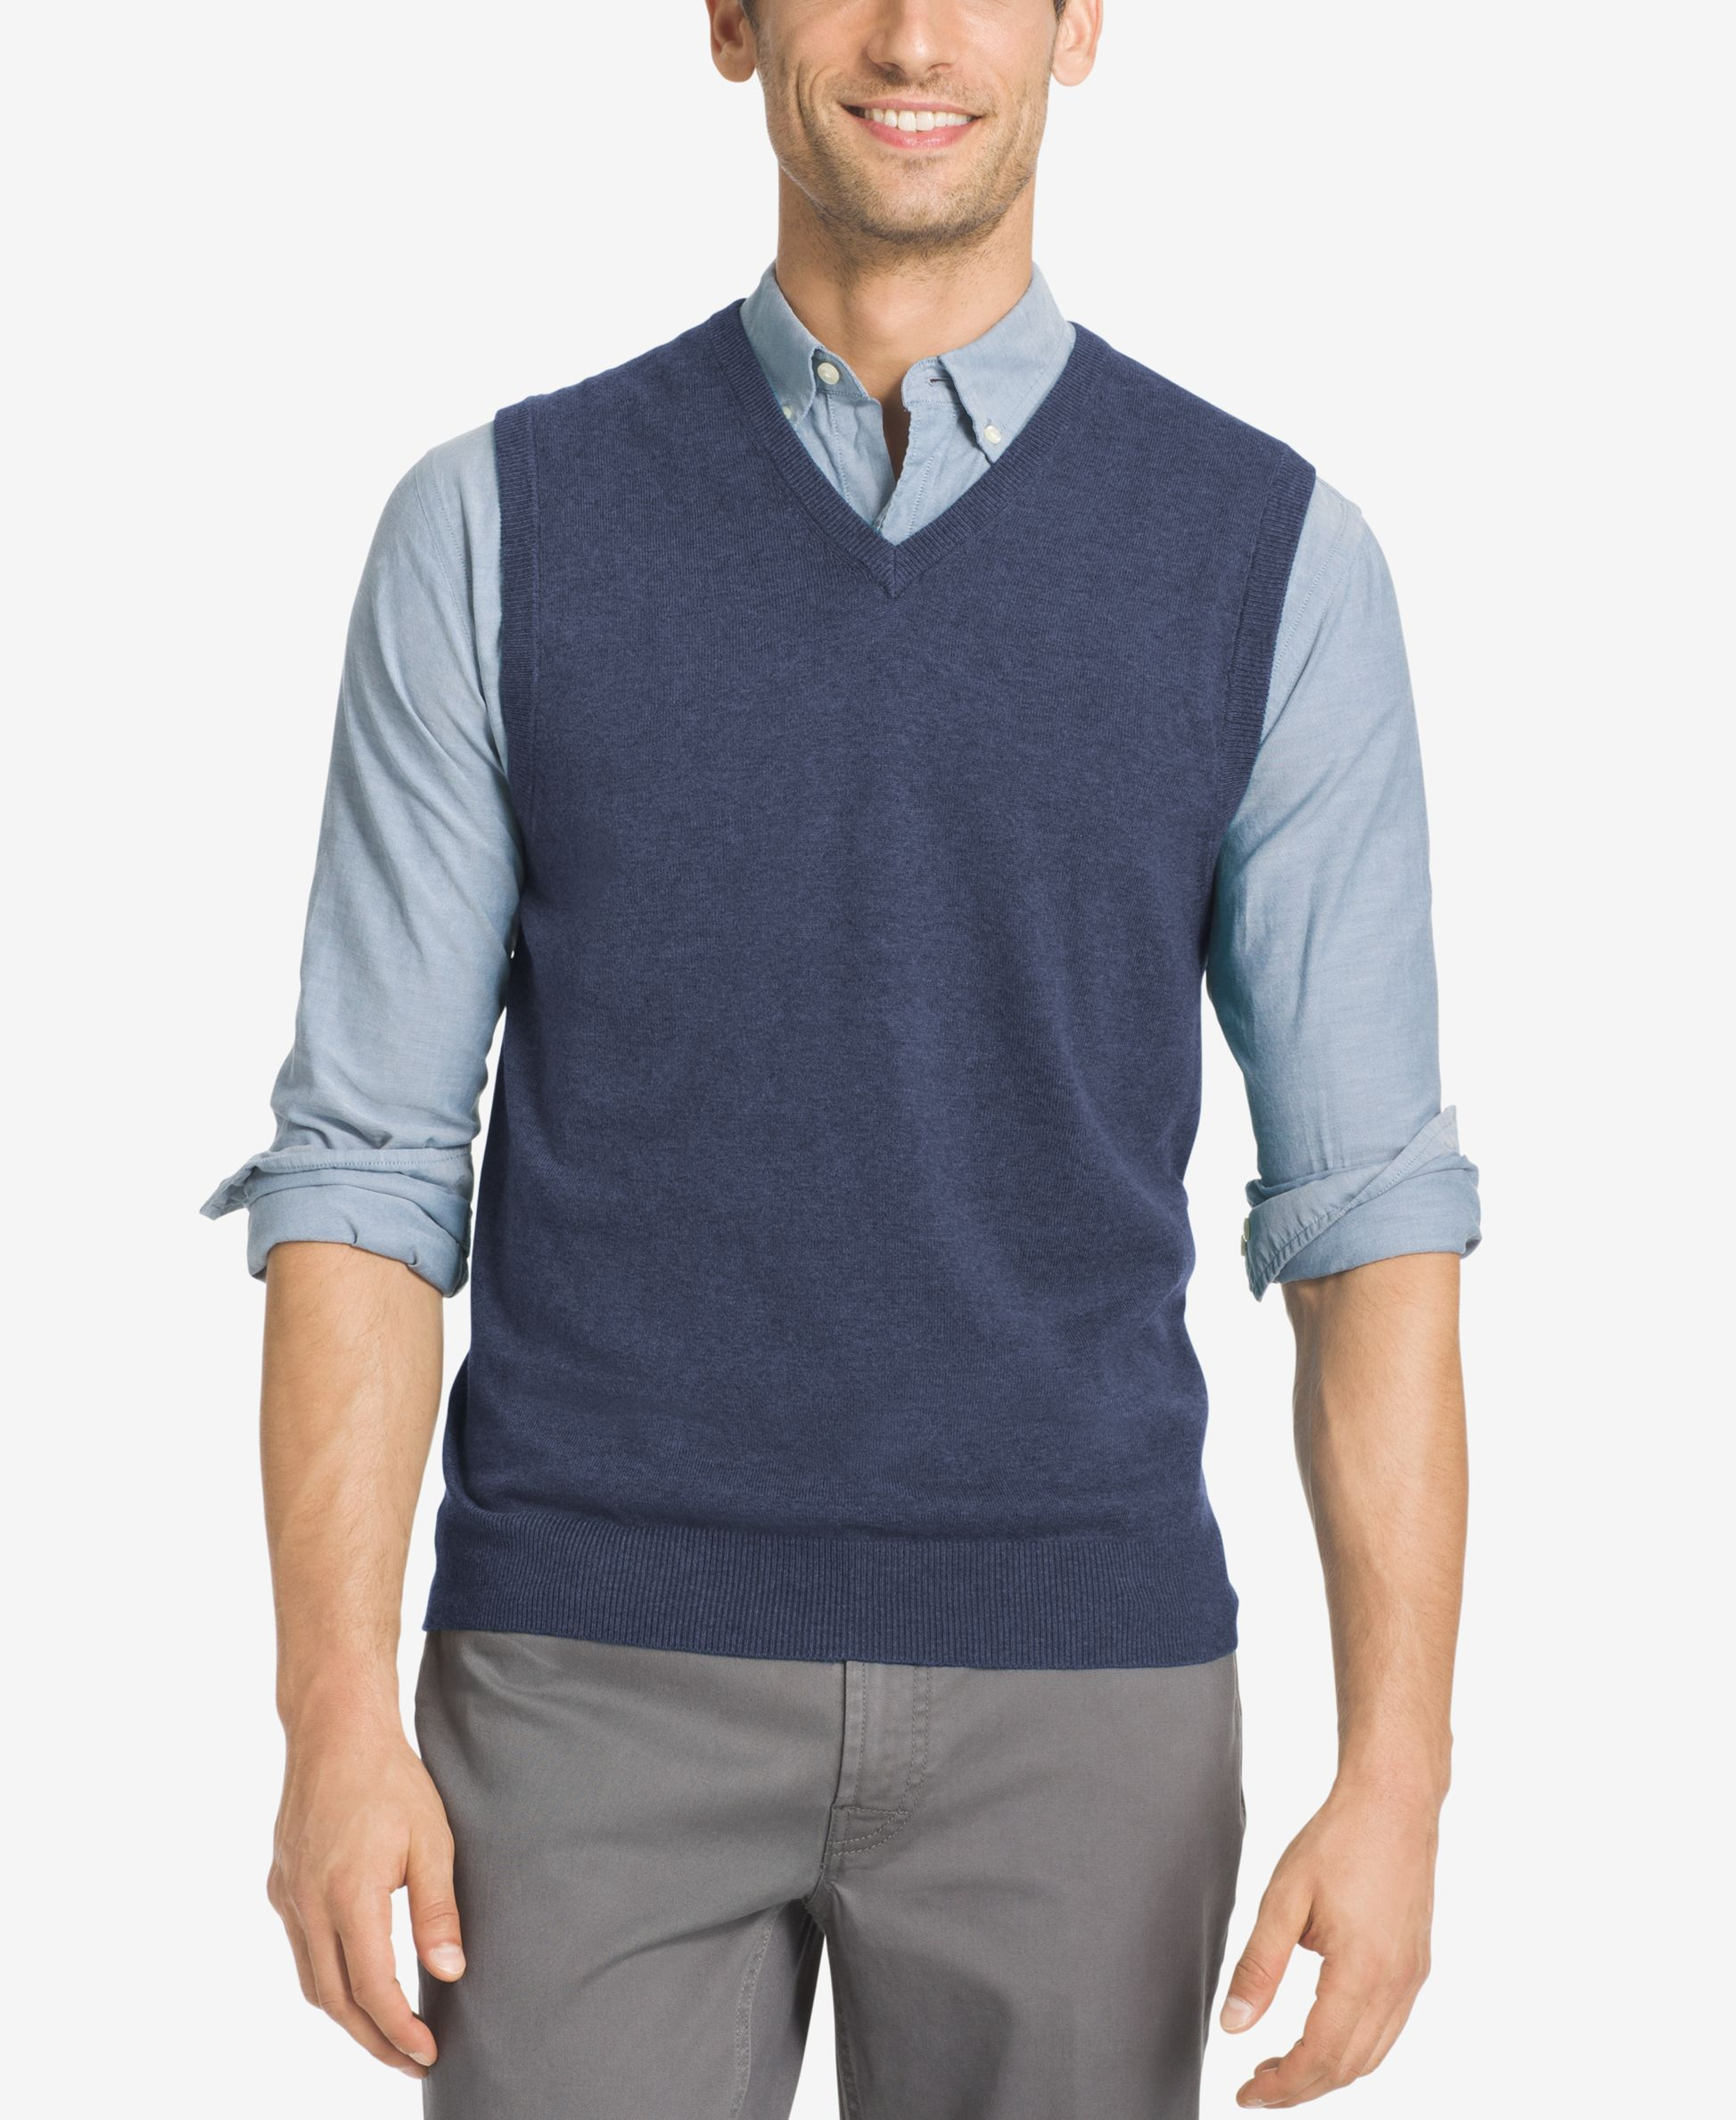 Izod Men's Campus Sweater Vest | Products | Pinterest | Products